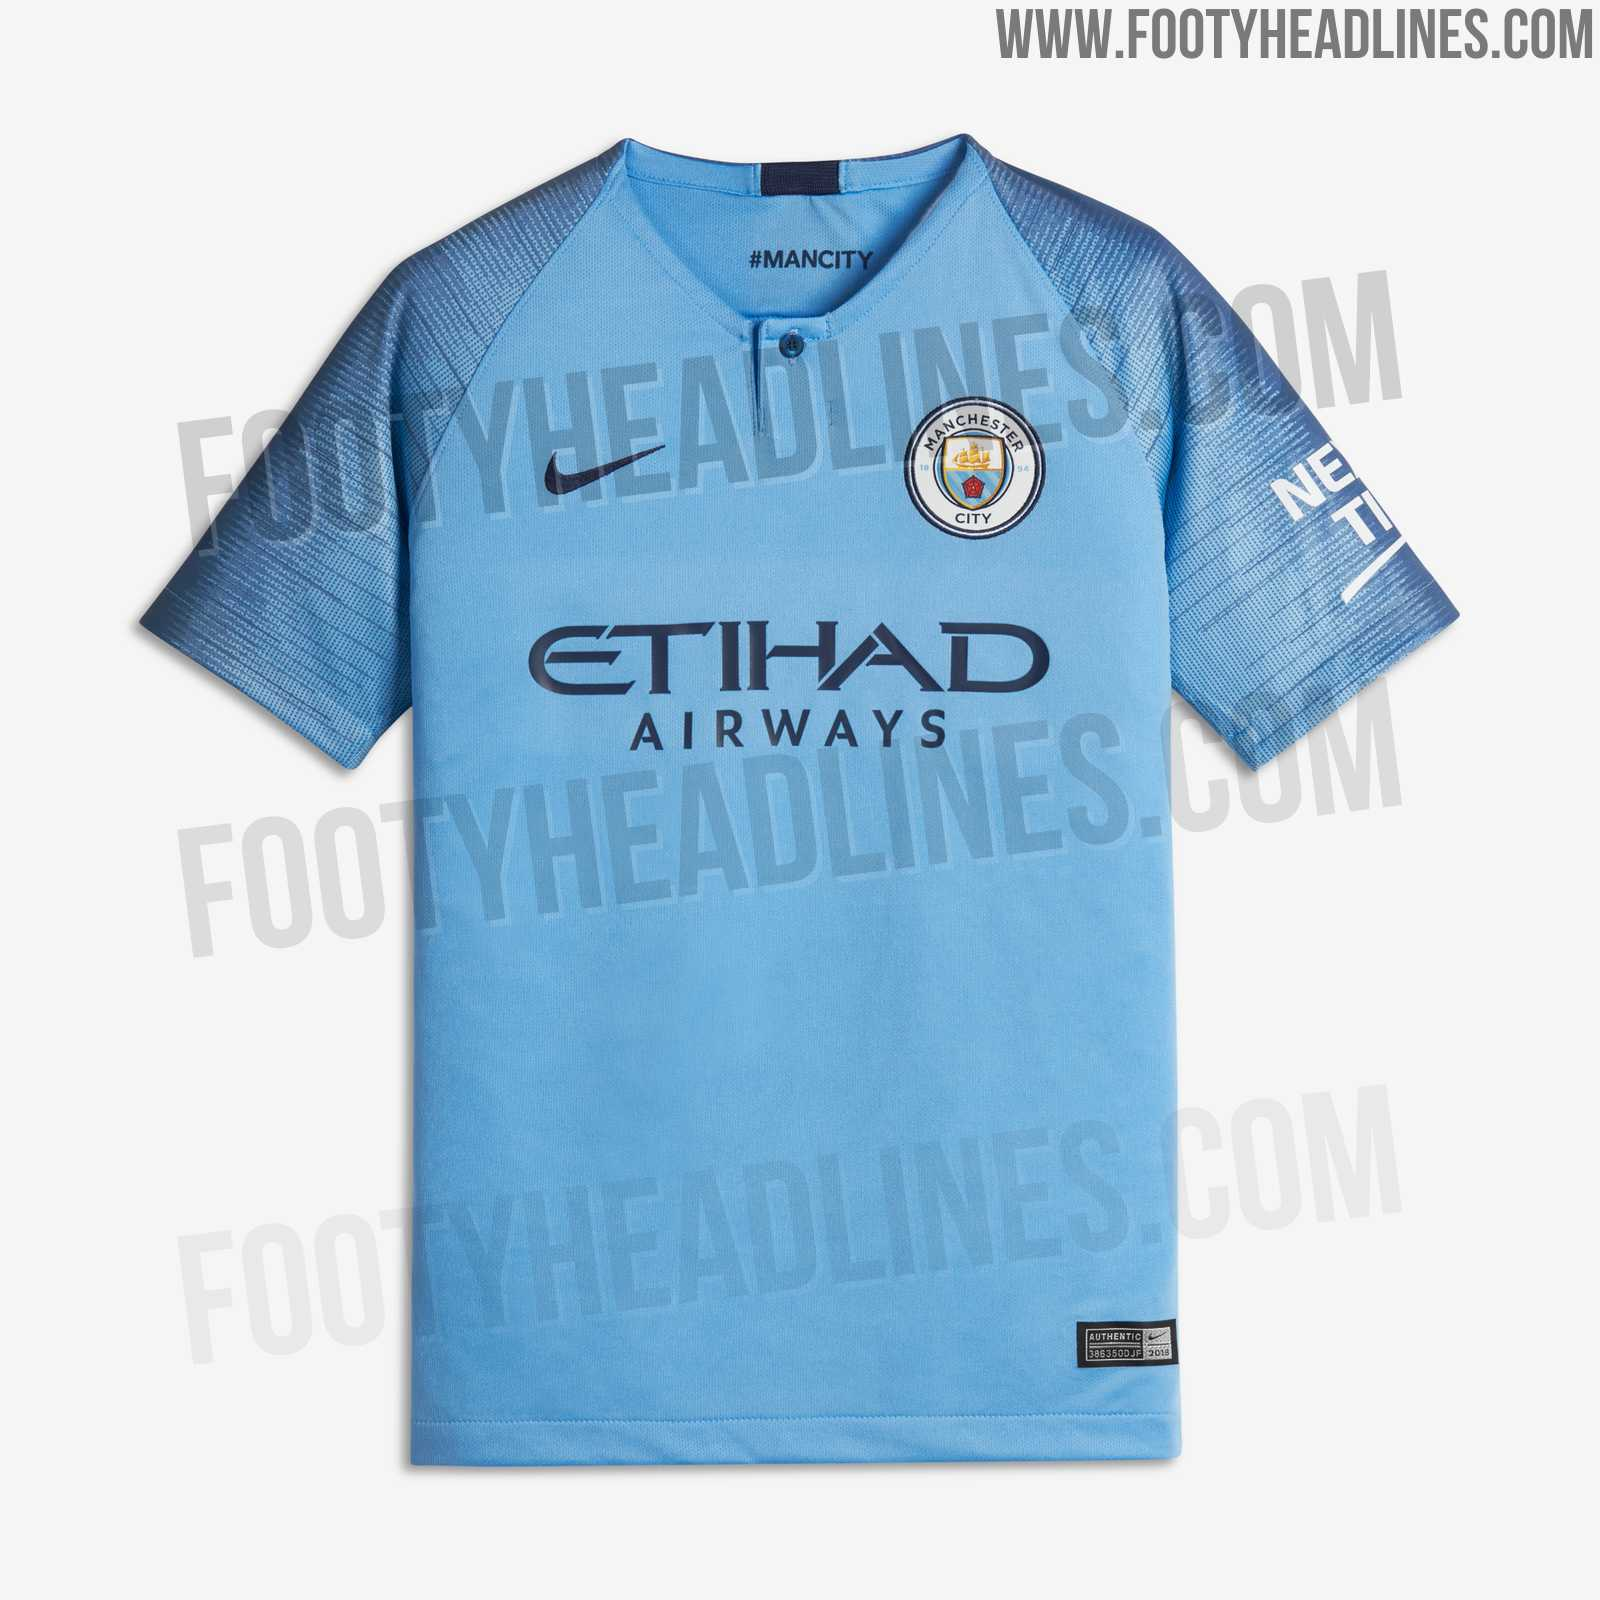 6e722c61f While the Etihad Airways tag on the front of the Manchester City 18-19 home  kit is navy, as is the Swoosh on the right chest, the Nexen Tires sleeve  sponsor ...